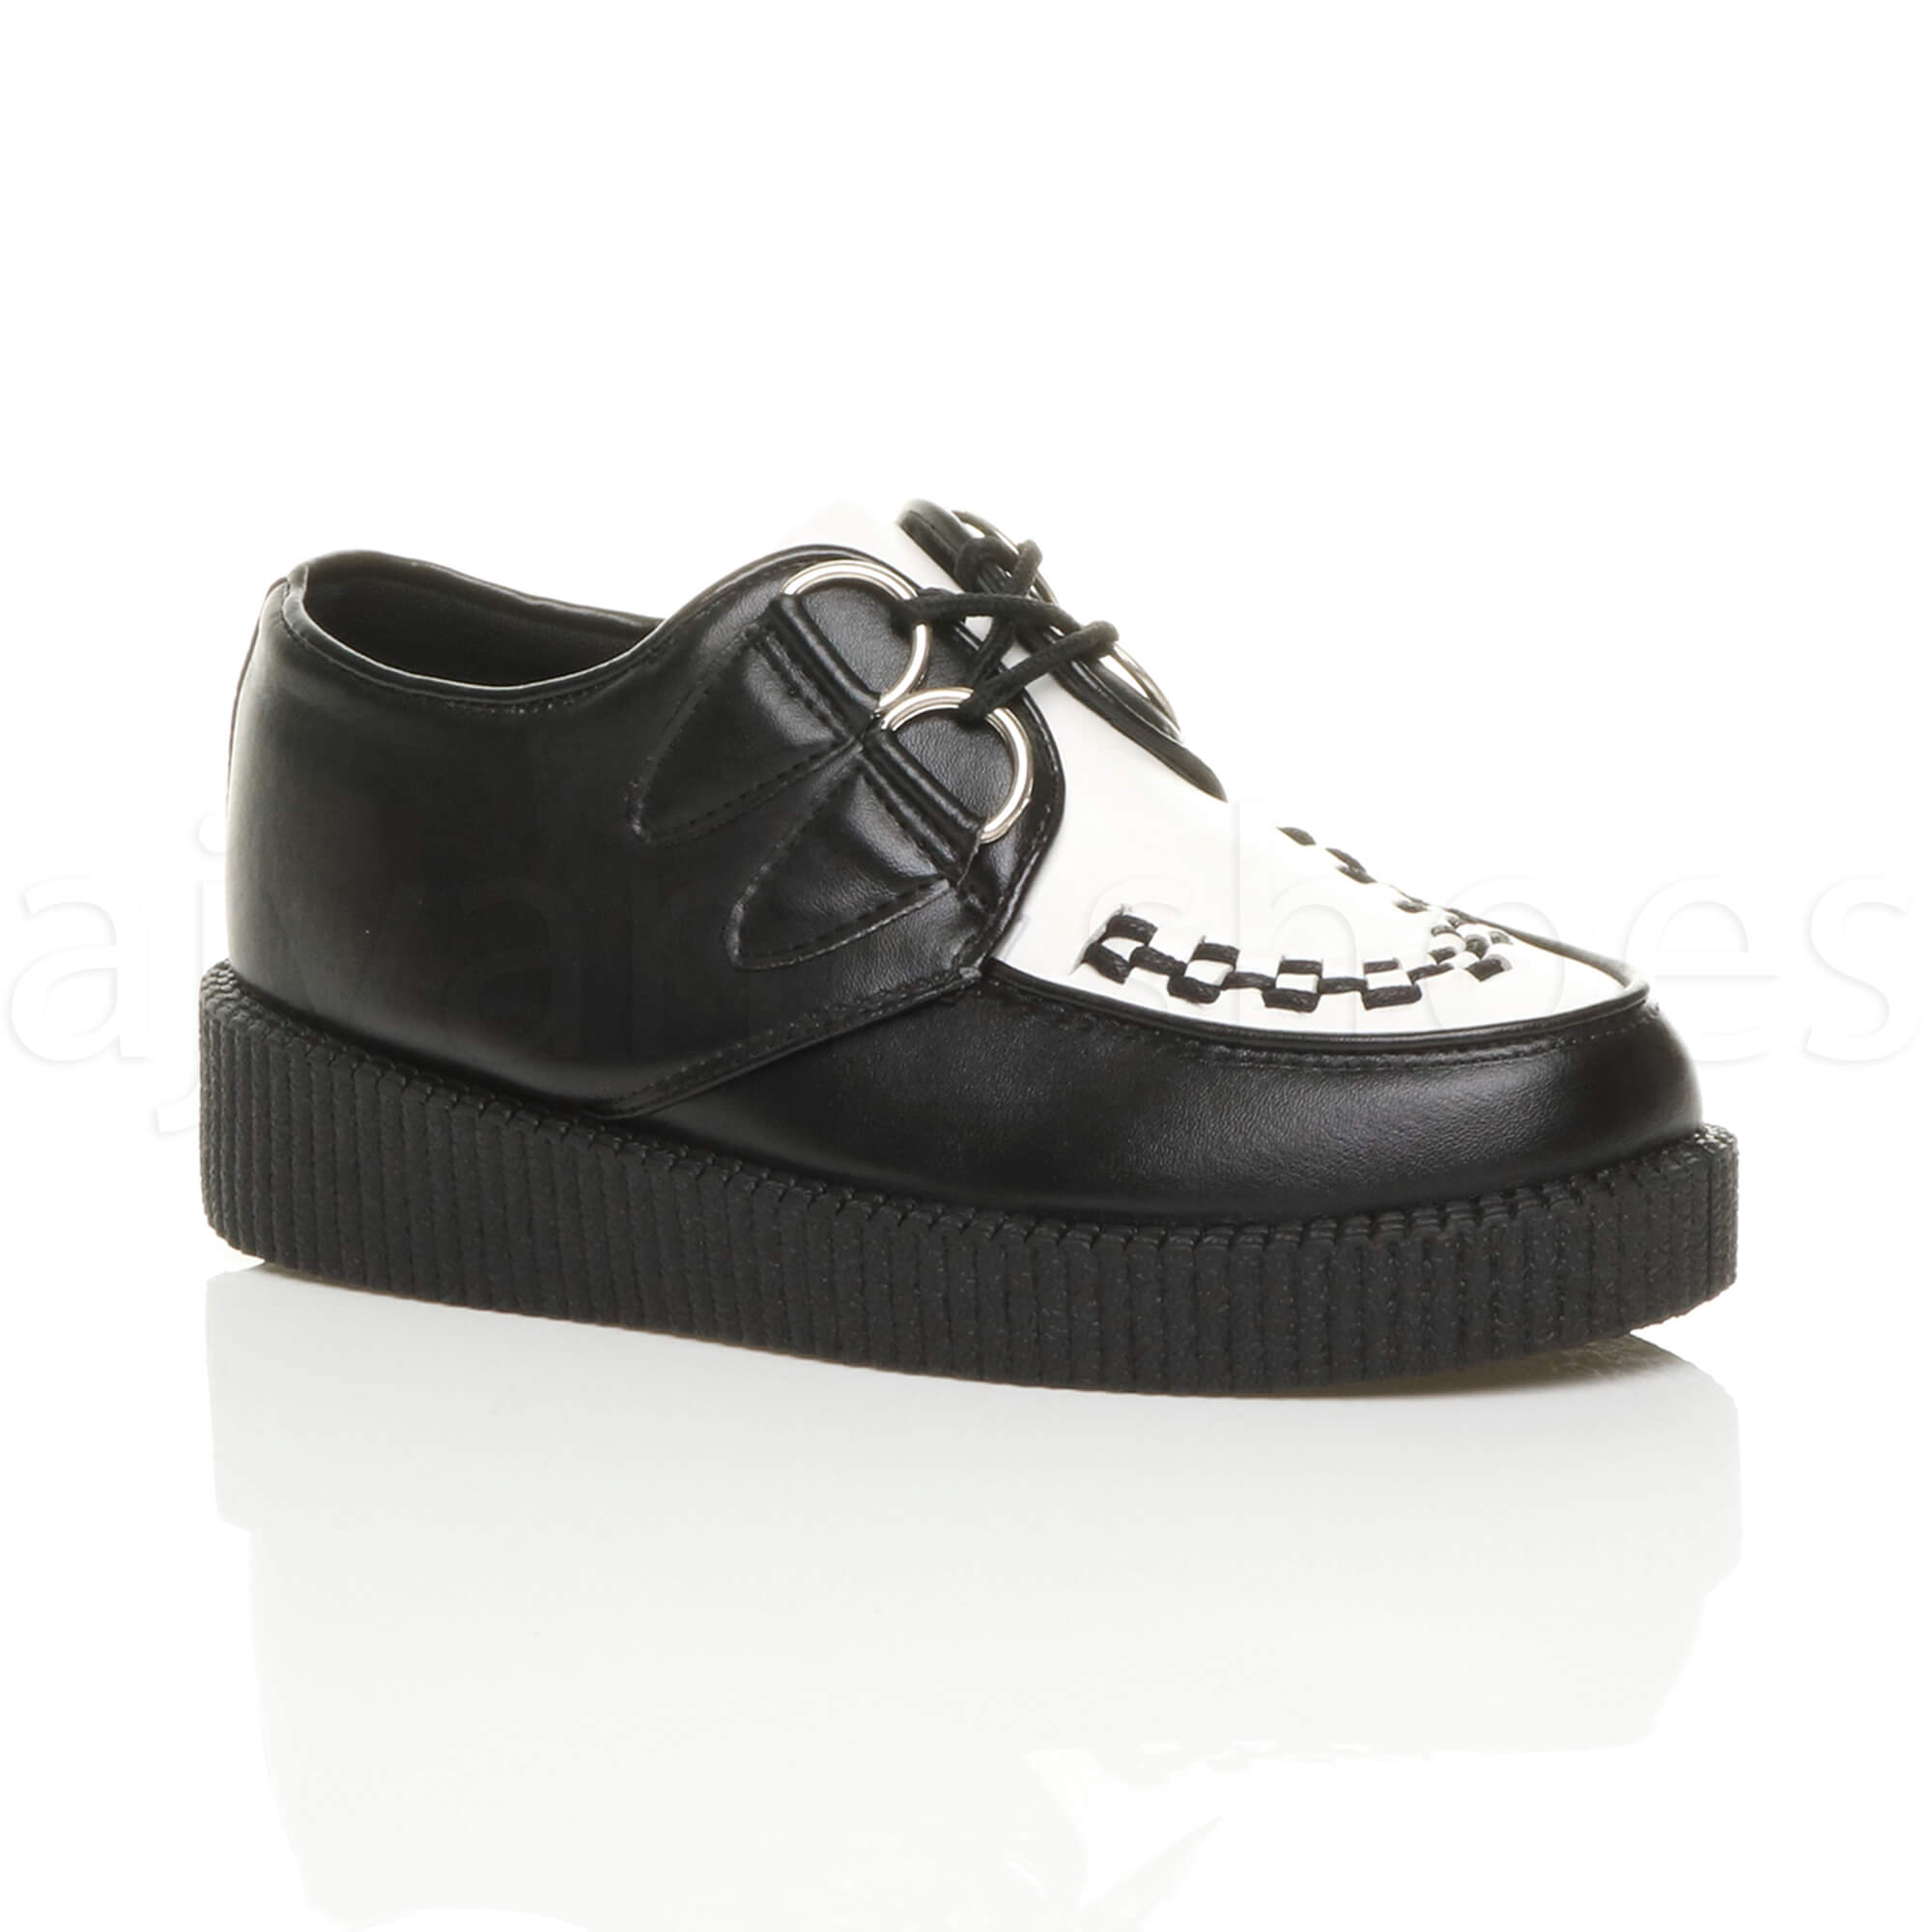 WOMENS-LADIES-FLAT-PLATFORM-WEDGE-LACE-UP-GOTH-PUNK-CREEPERS-SHOES-BOOTS-SIZE